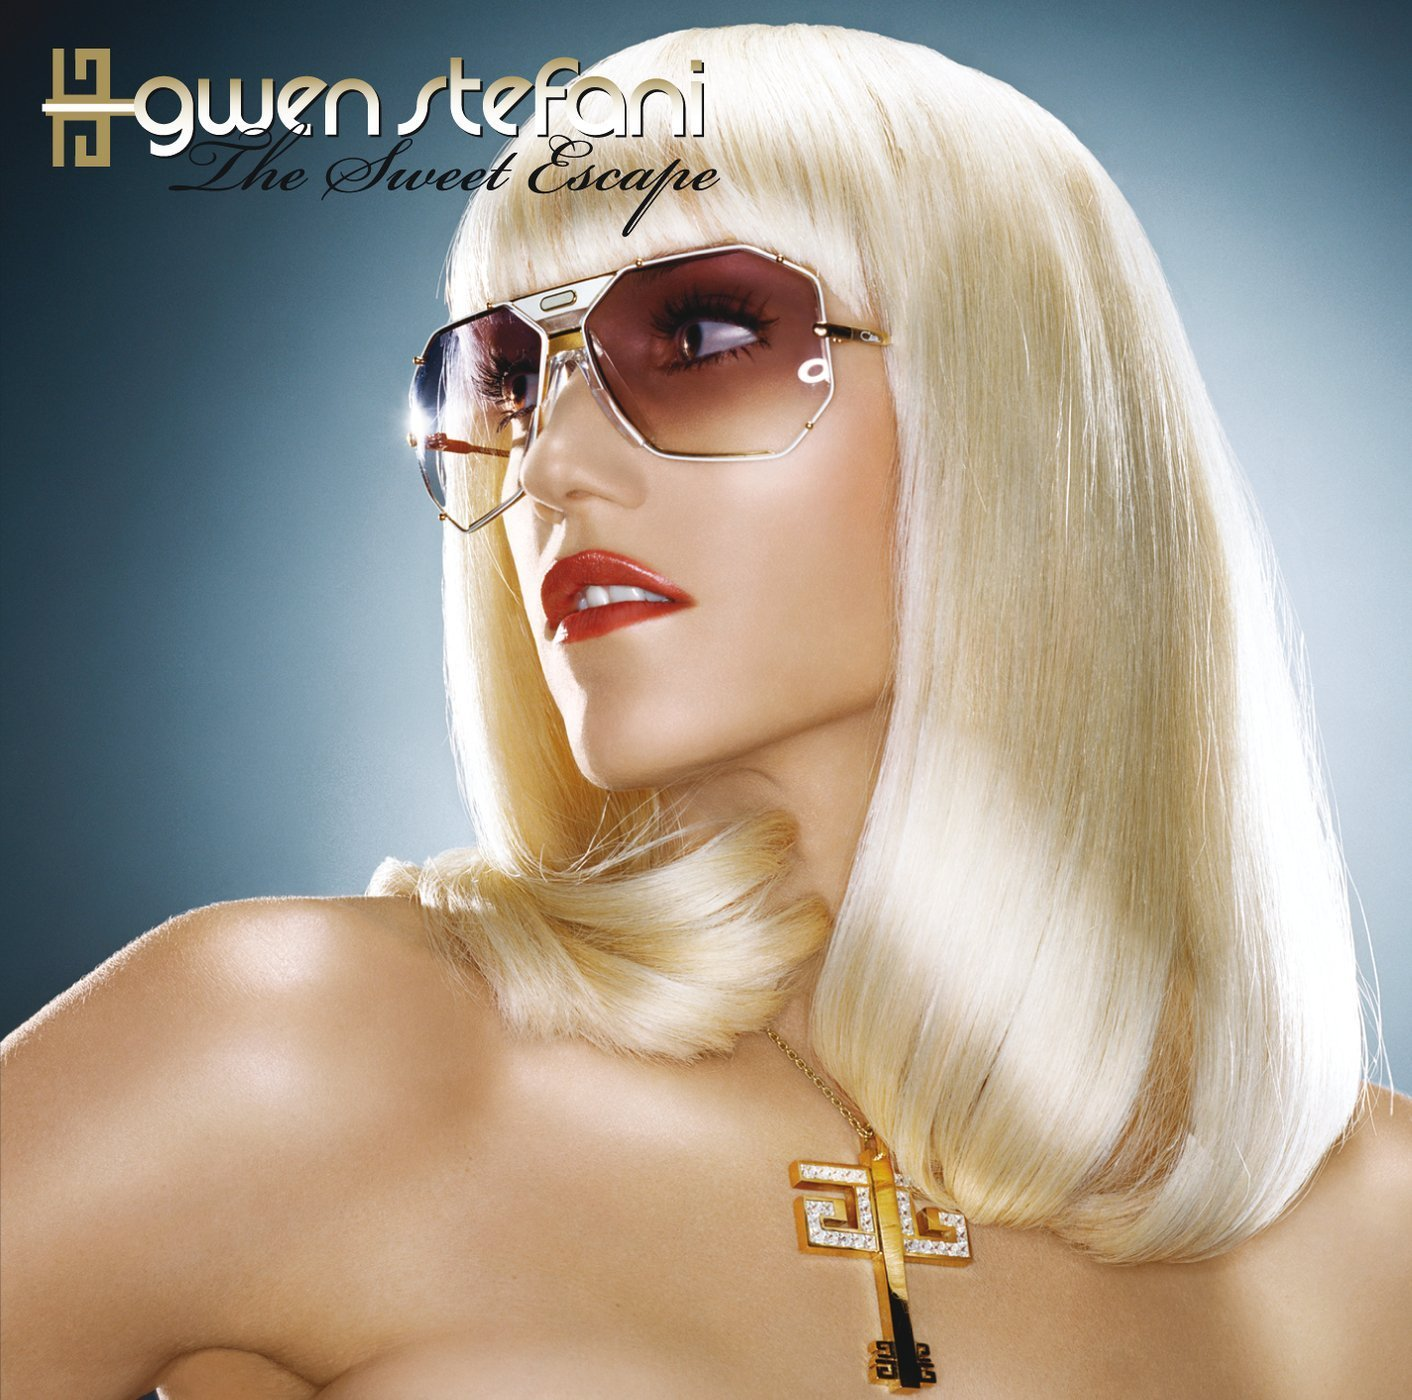 GWEN-STEFANI+THE-SWEET-ESCAPE.jpg